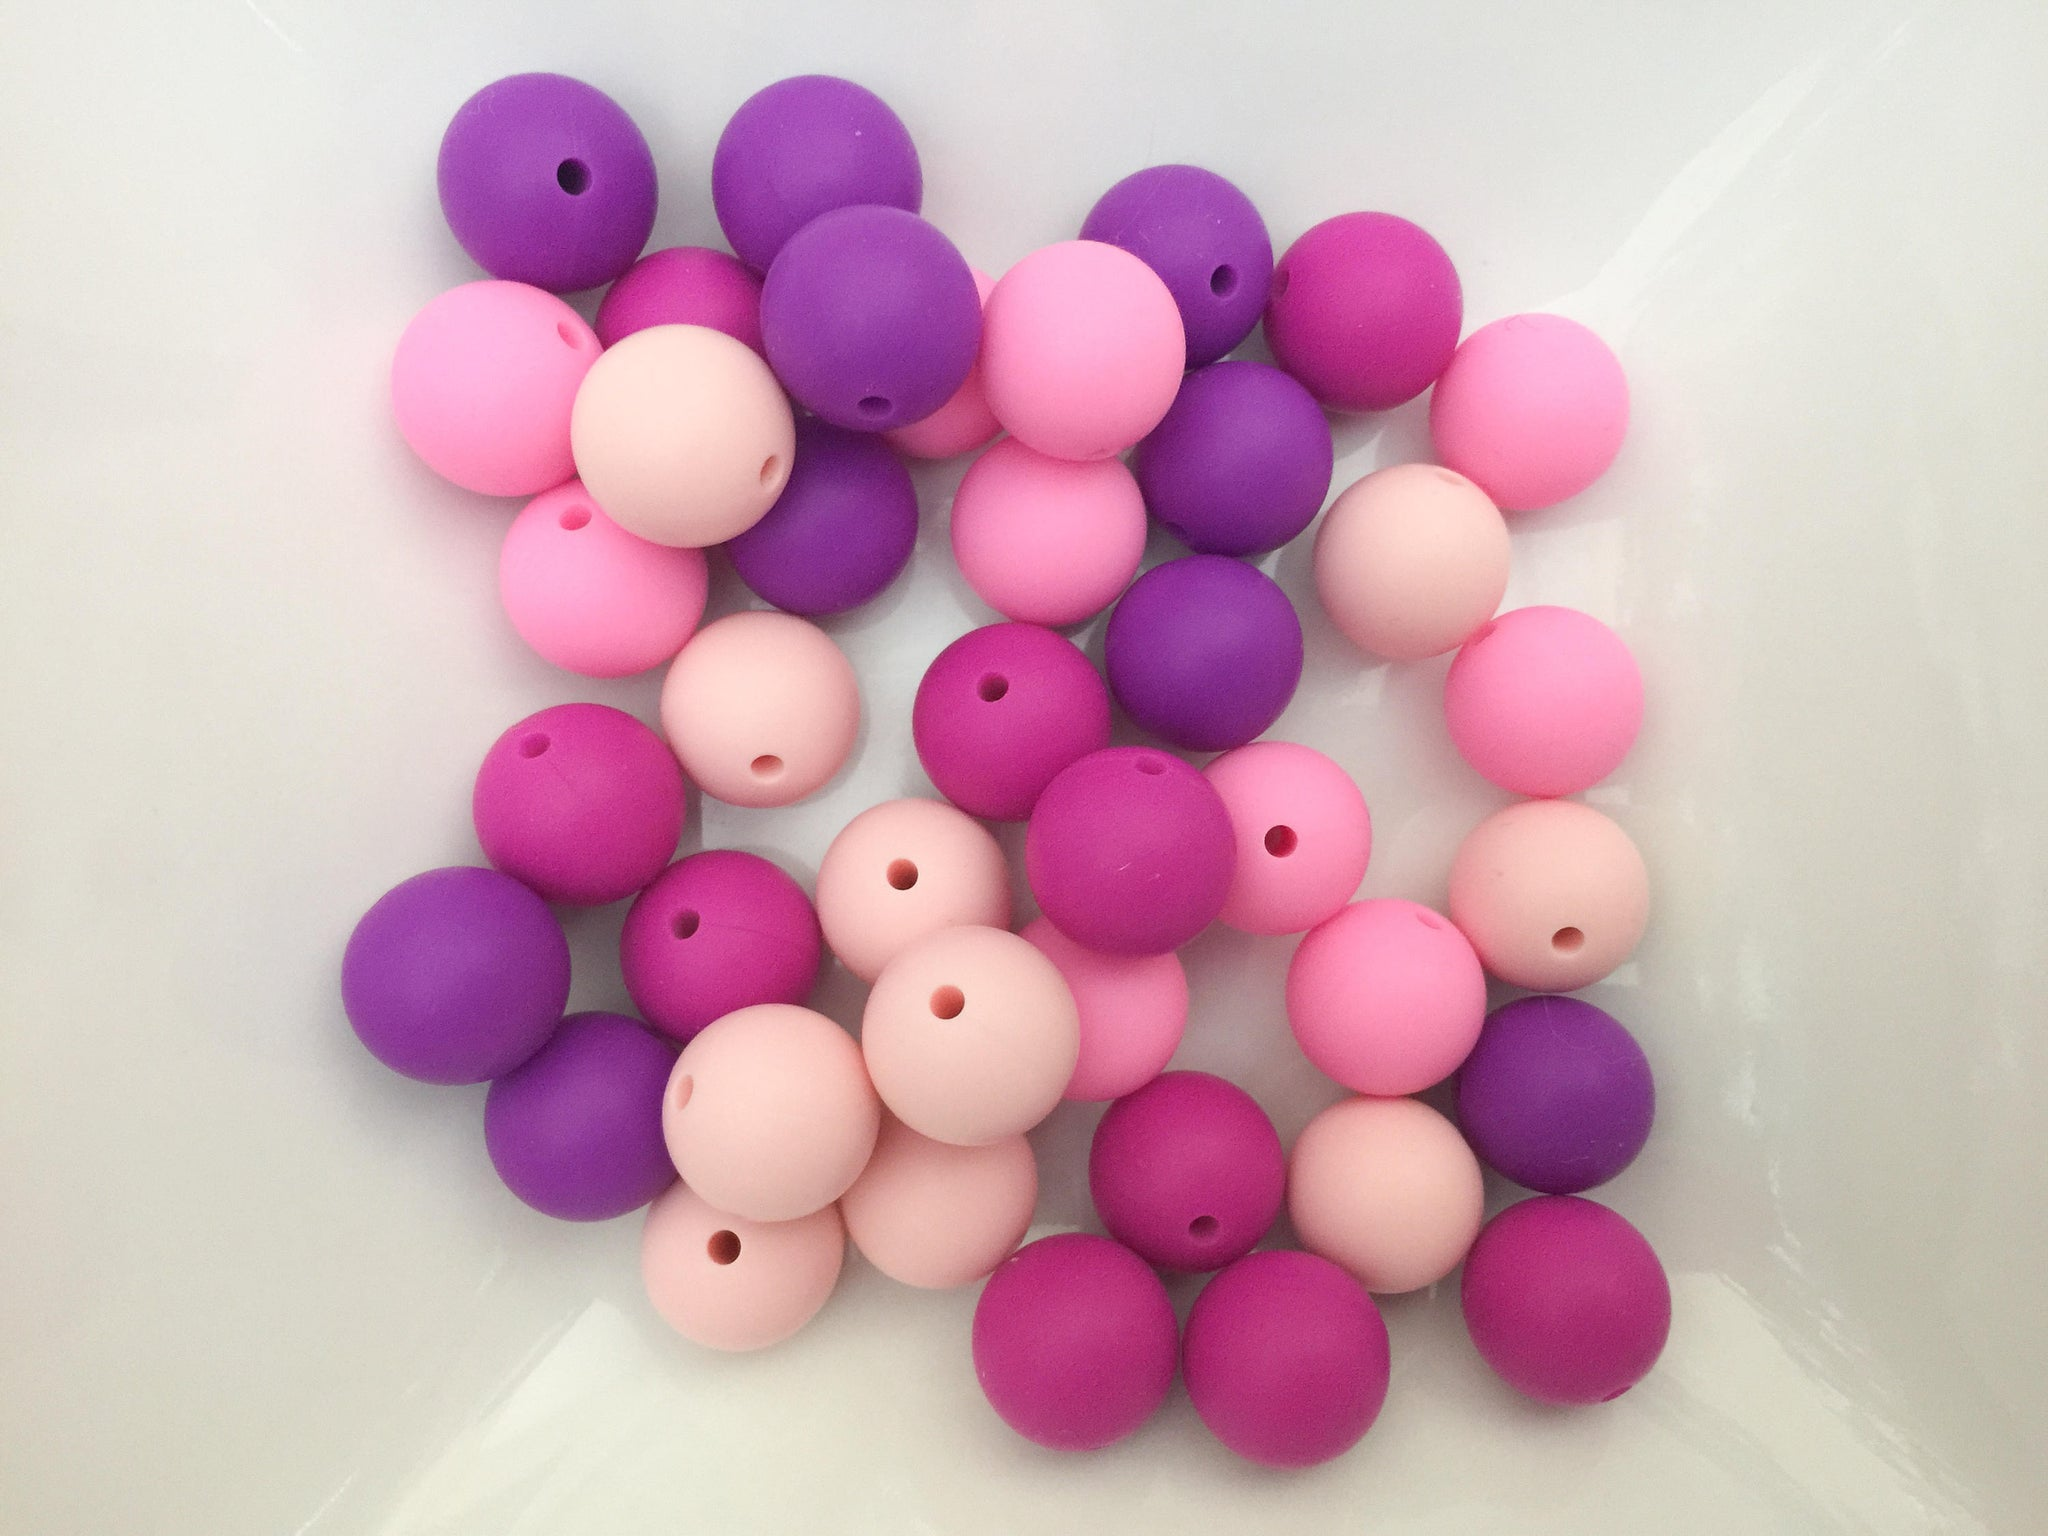 40 Bulk Silicone Teething Beads - Pinks Purples - Bulk Silicone Beads Wholesale